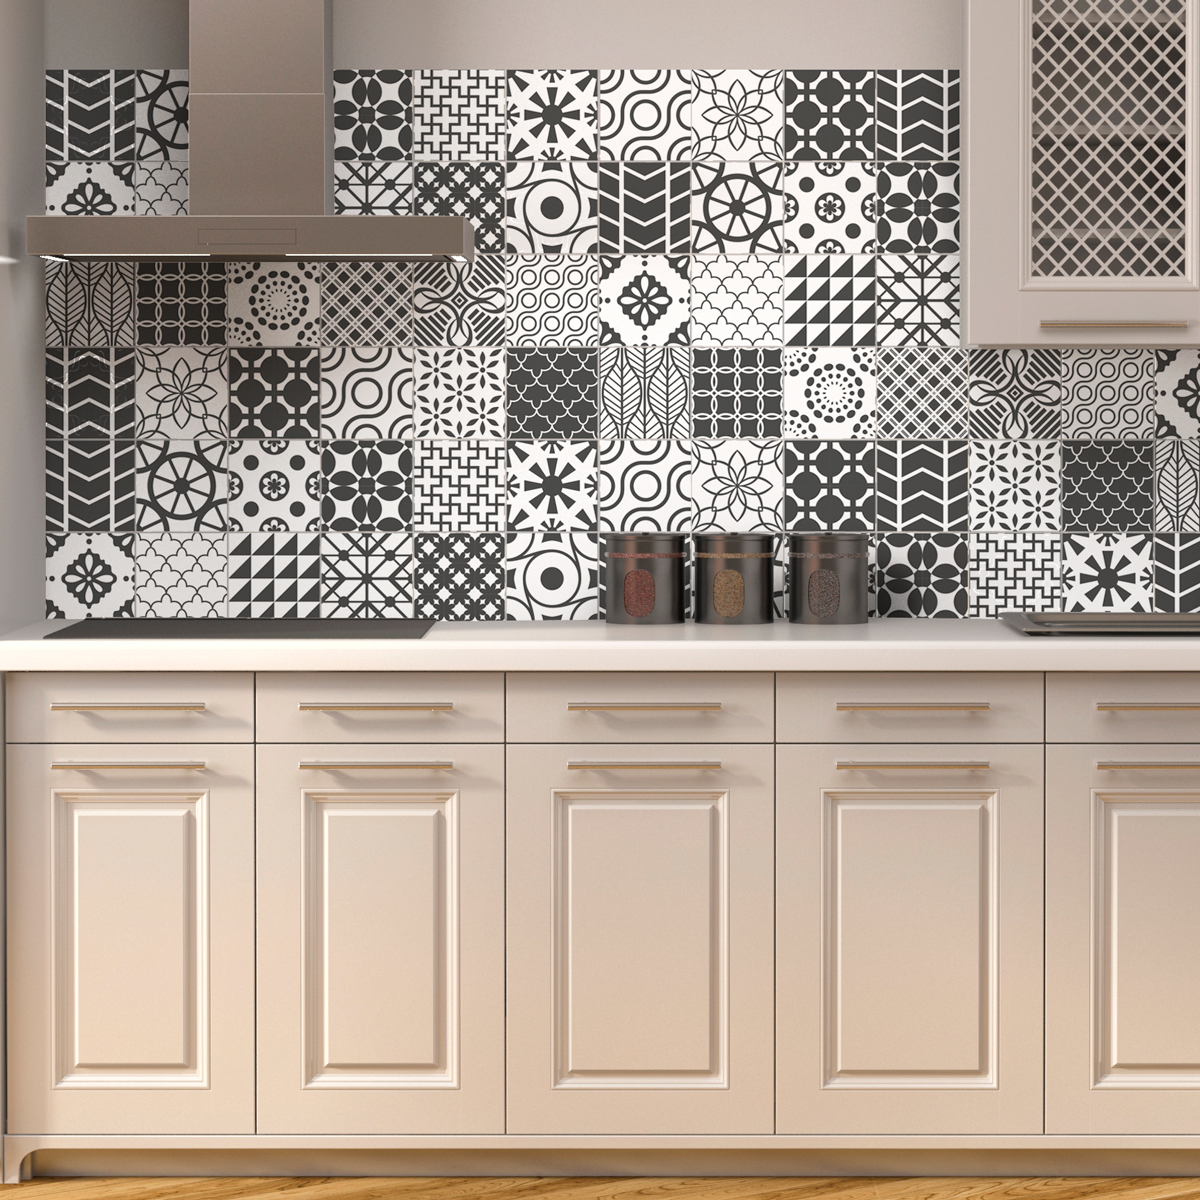 24 stickers carreaux de ciment nuances de gris lindos cuisine carrelages ambiance sticker. Black Bedroom Furniture Sets. Home Design Ideas